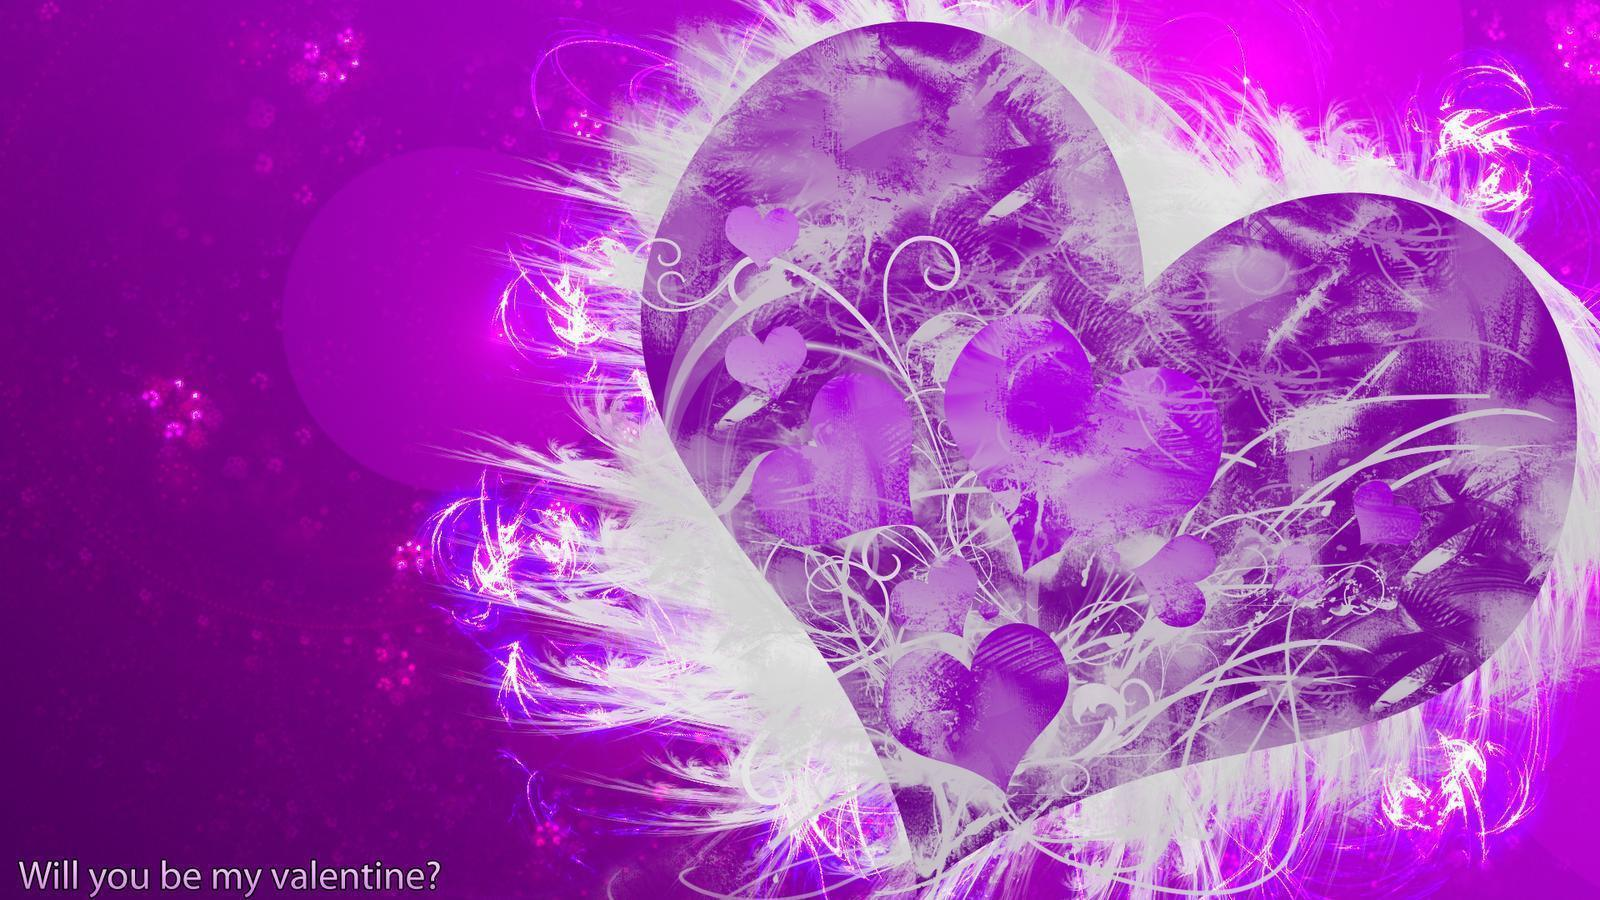 Love Wallpaper Wallpaper cave : Purple Love Wallpapers - Wallpaper cave